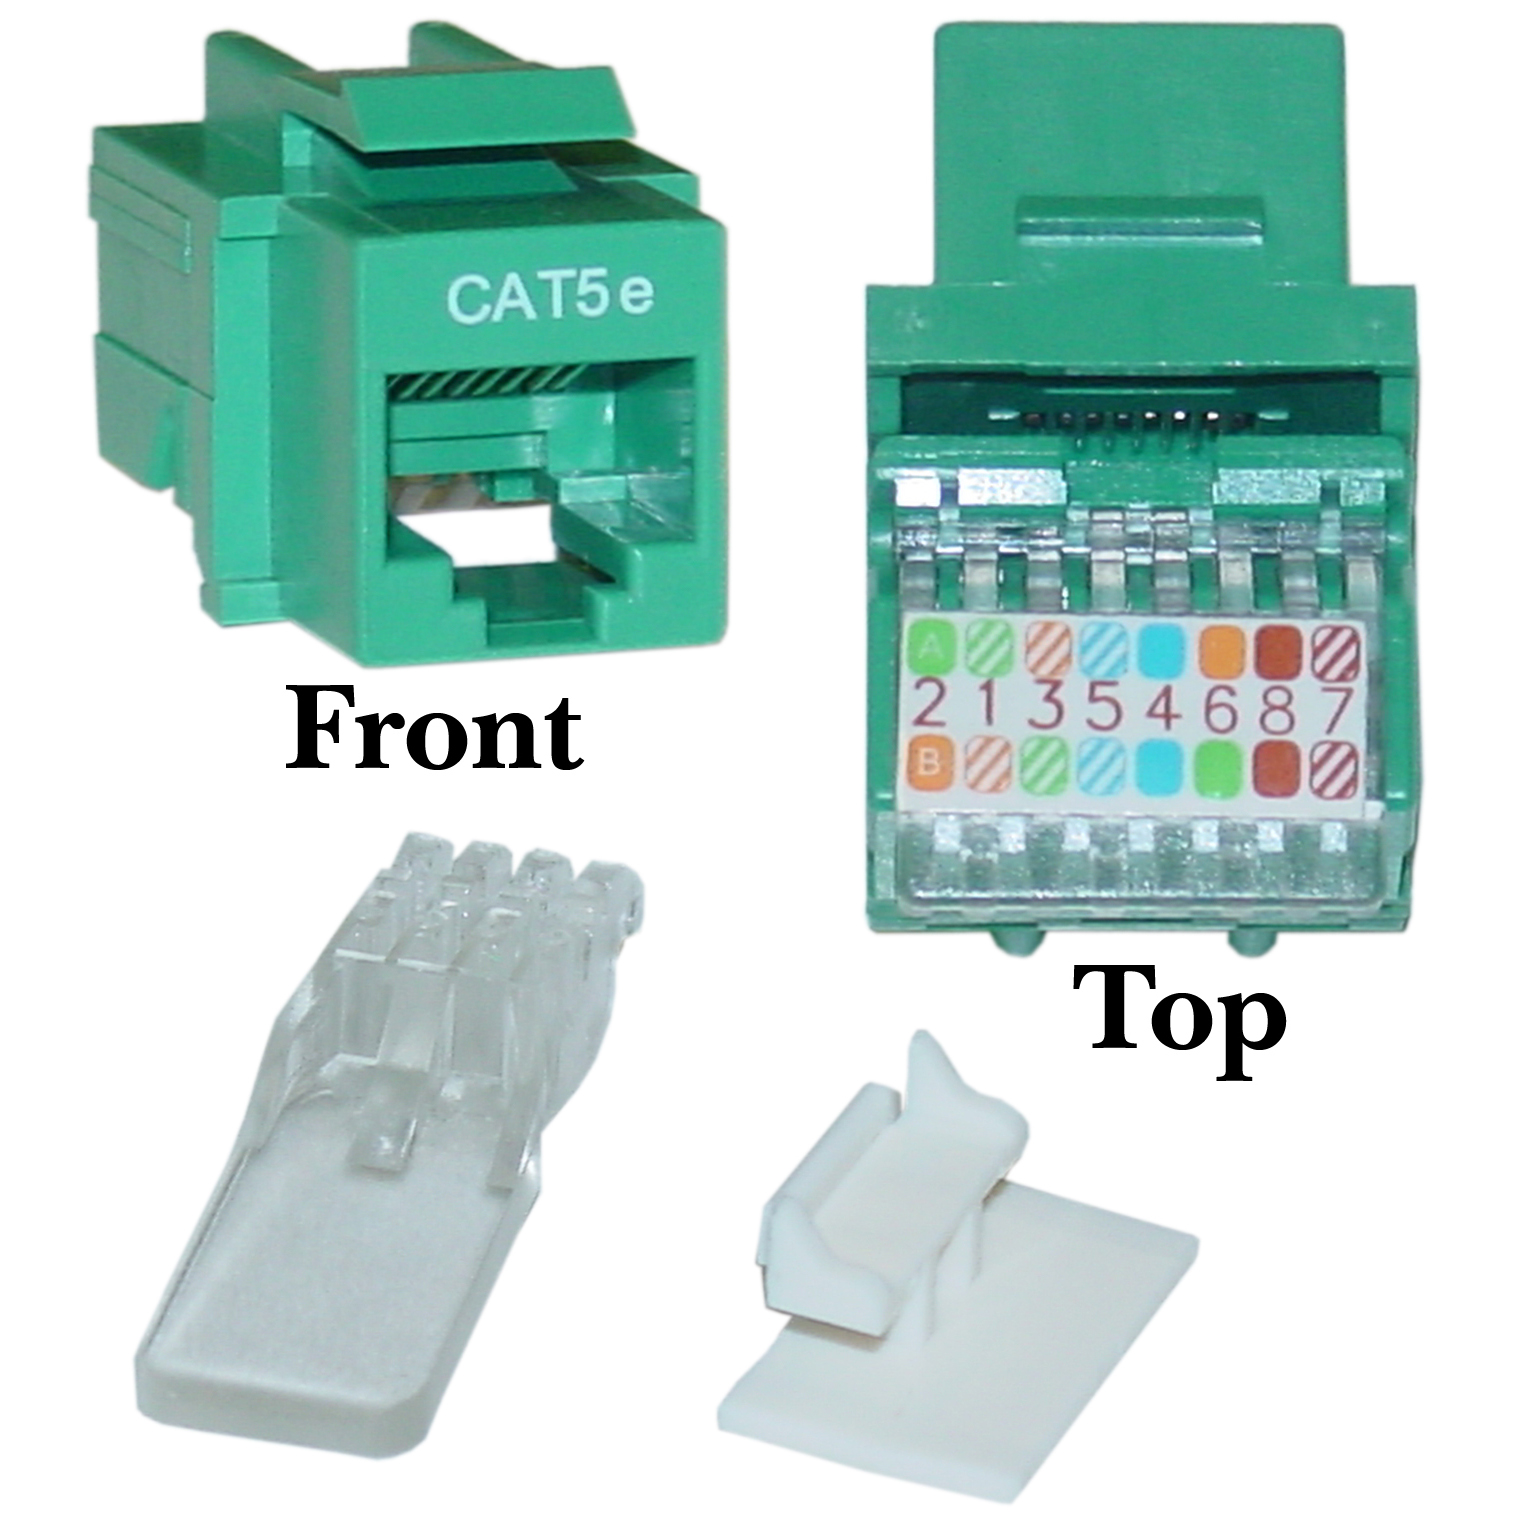 311 120gr green cat5e rj45 keystone jack toolless cablewholesale cat 5e jack diagram at gsmportal.co